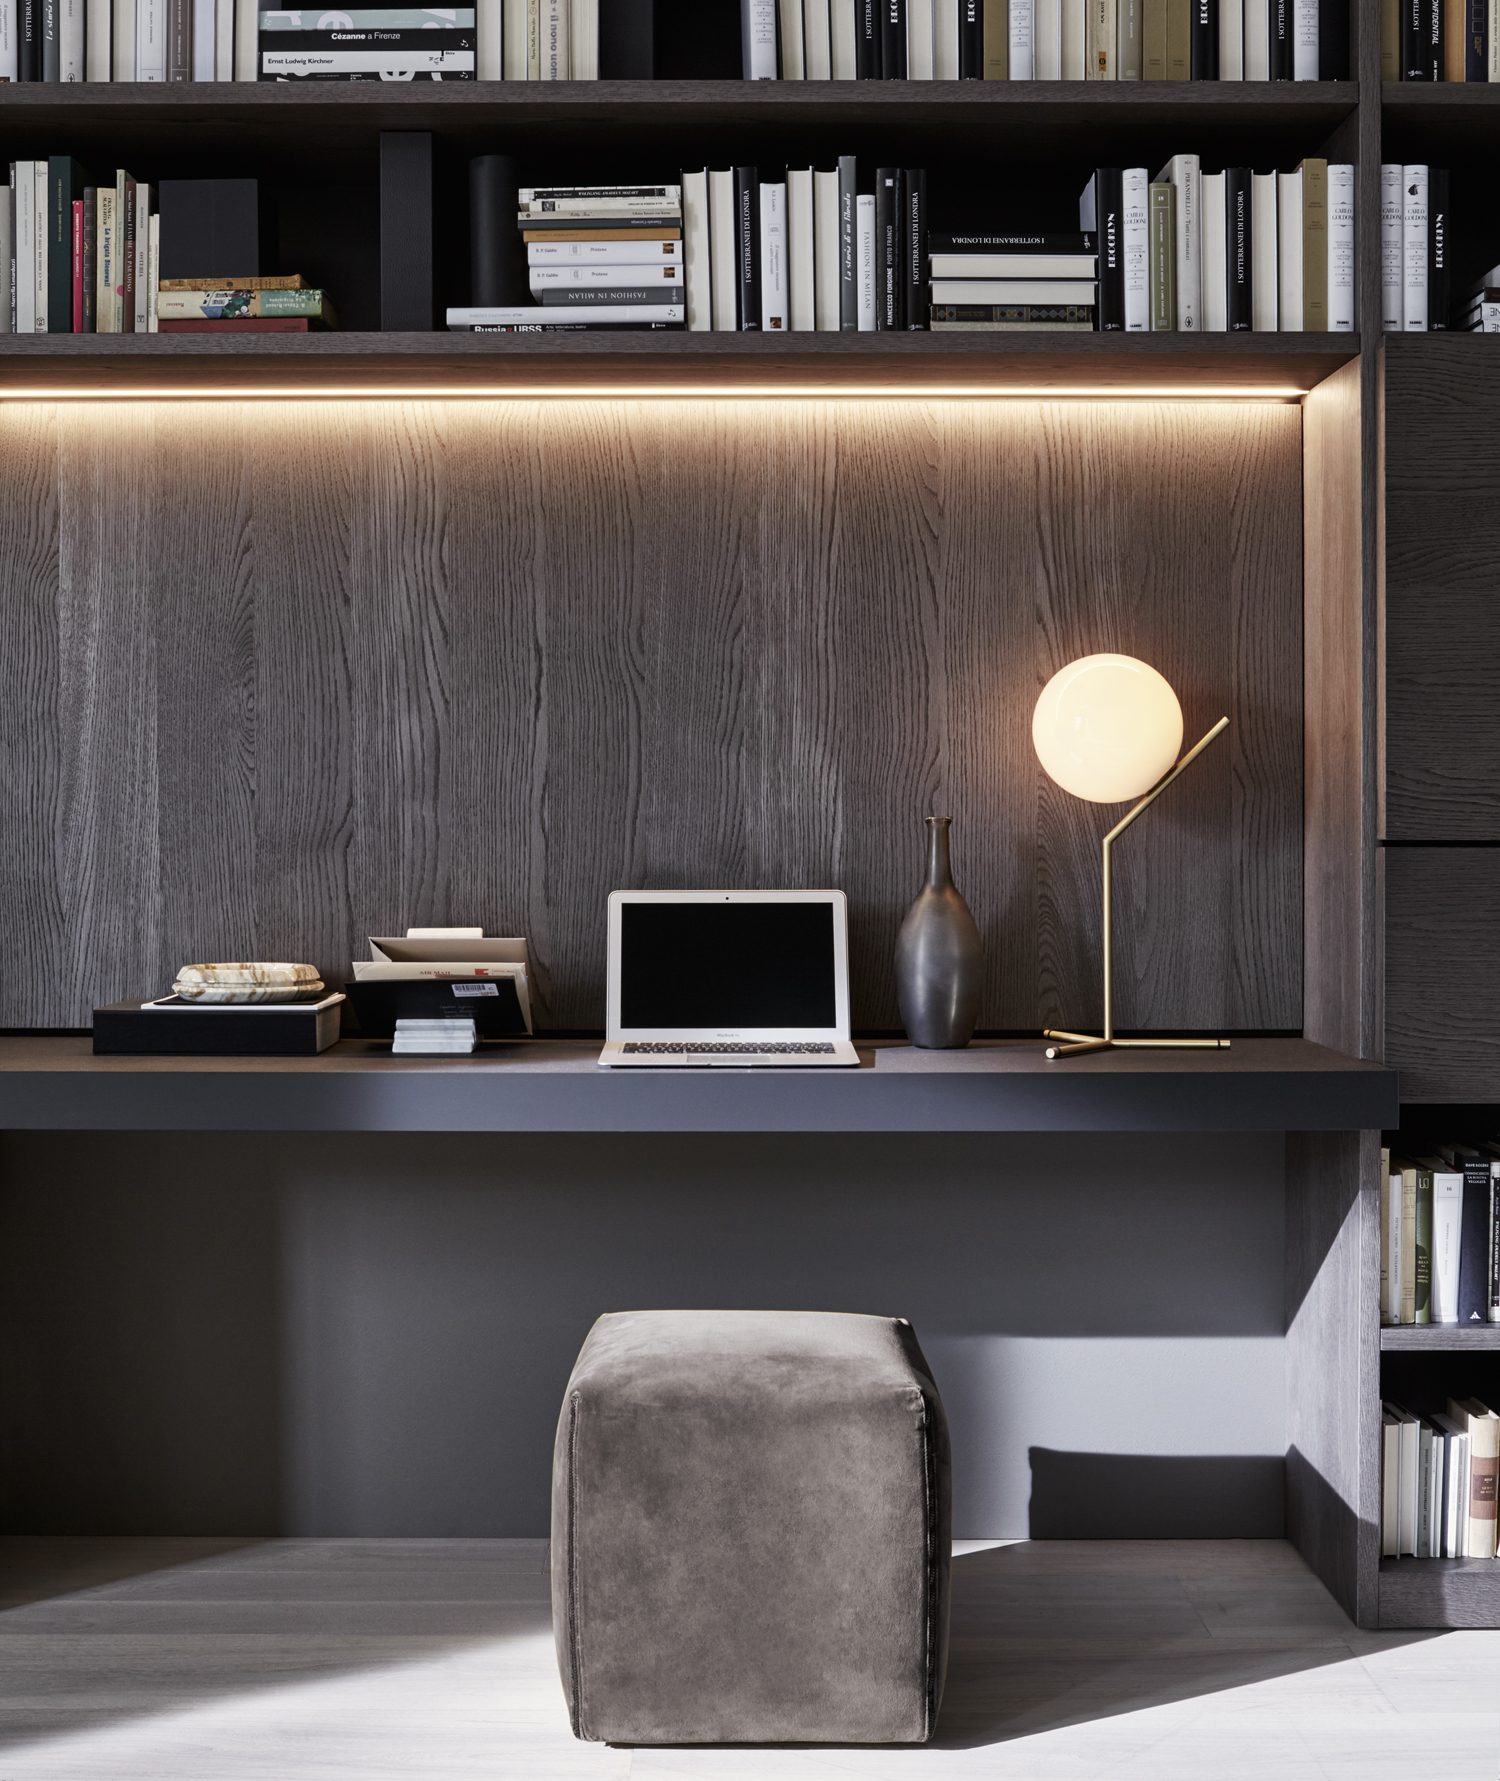 molteni c 505 storage system buy from campbell watson. Black Bedroom Furniture Sets. Home Design Ideas